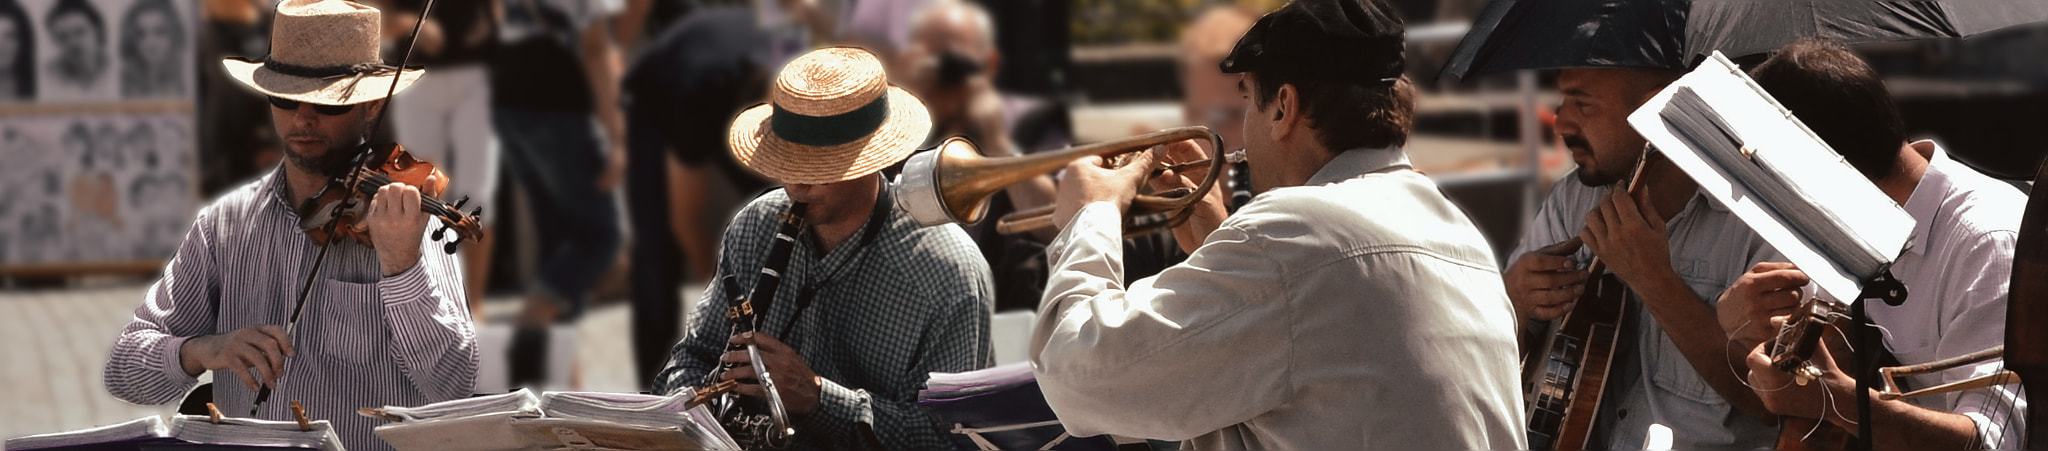 Photograph street music by Magdalena Moerkl on 500px